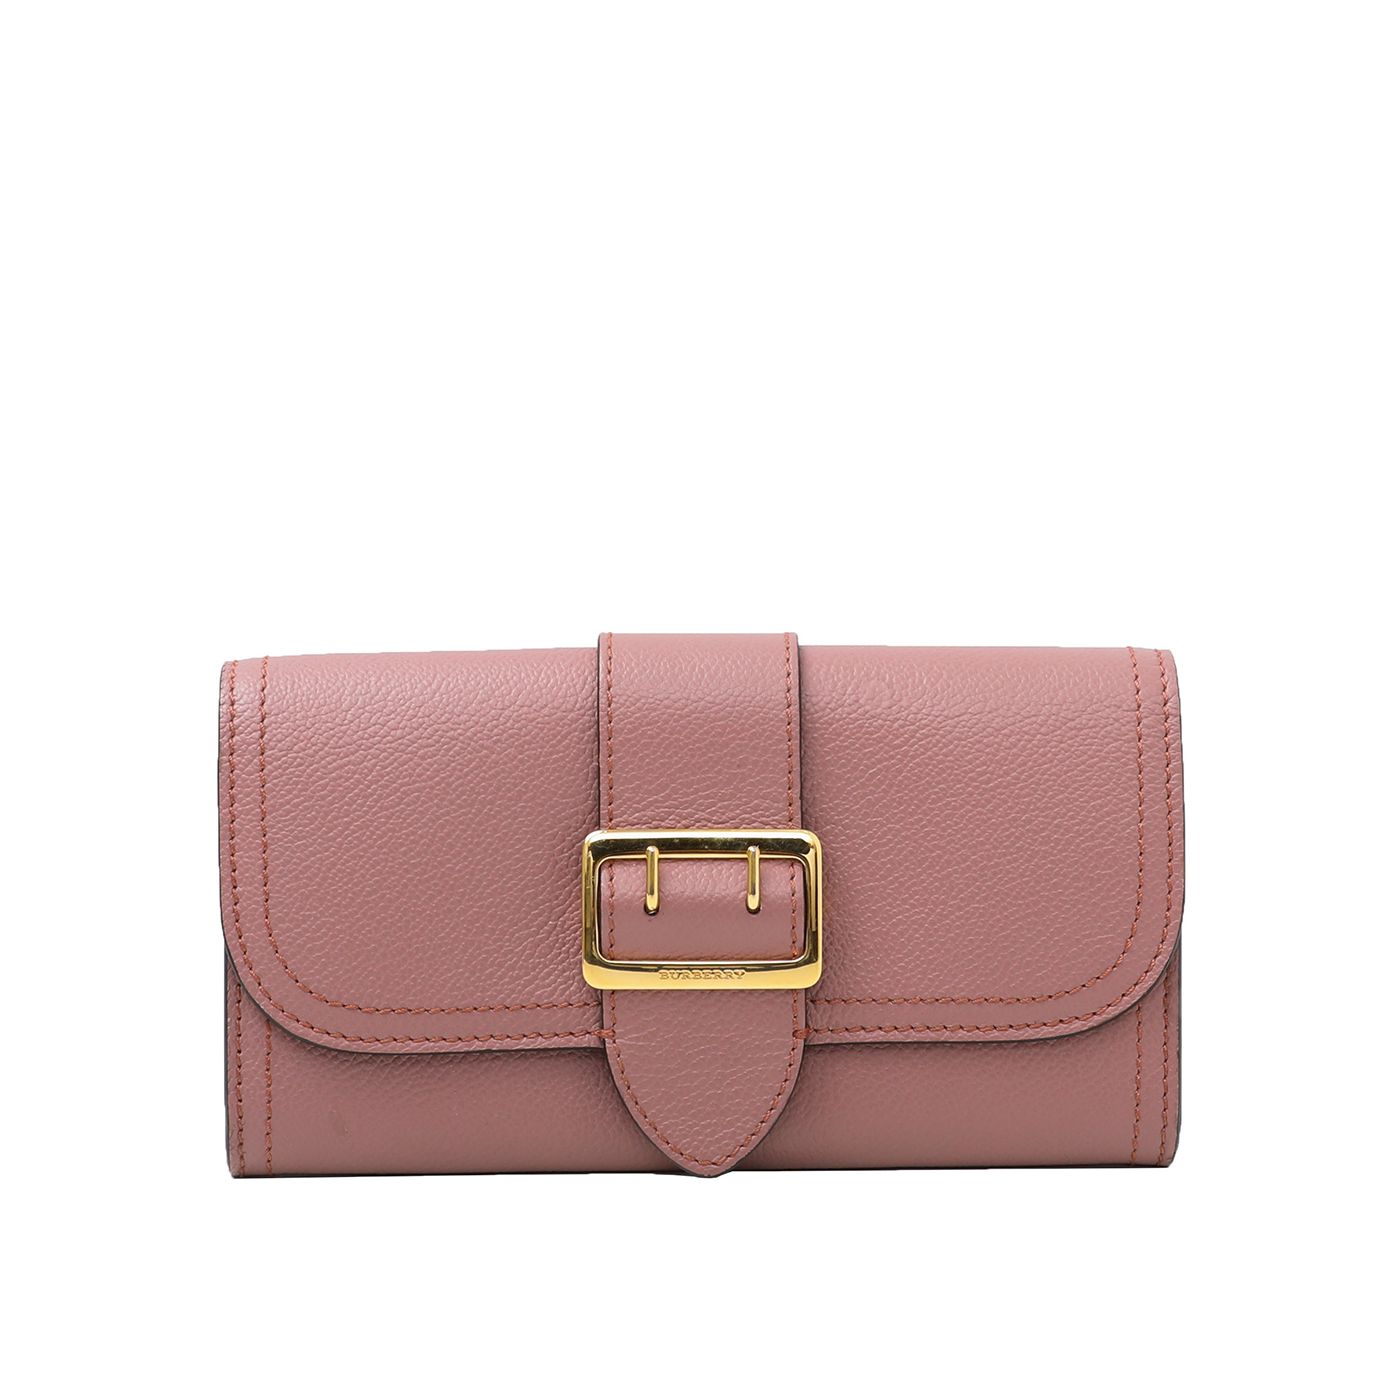 Burberry Dusty Pink Halton Wallet